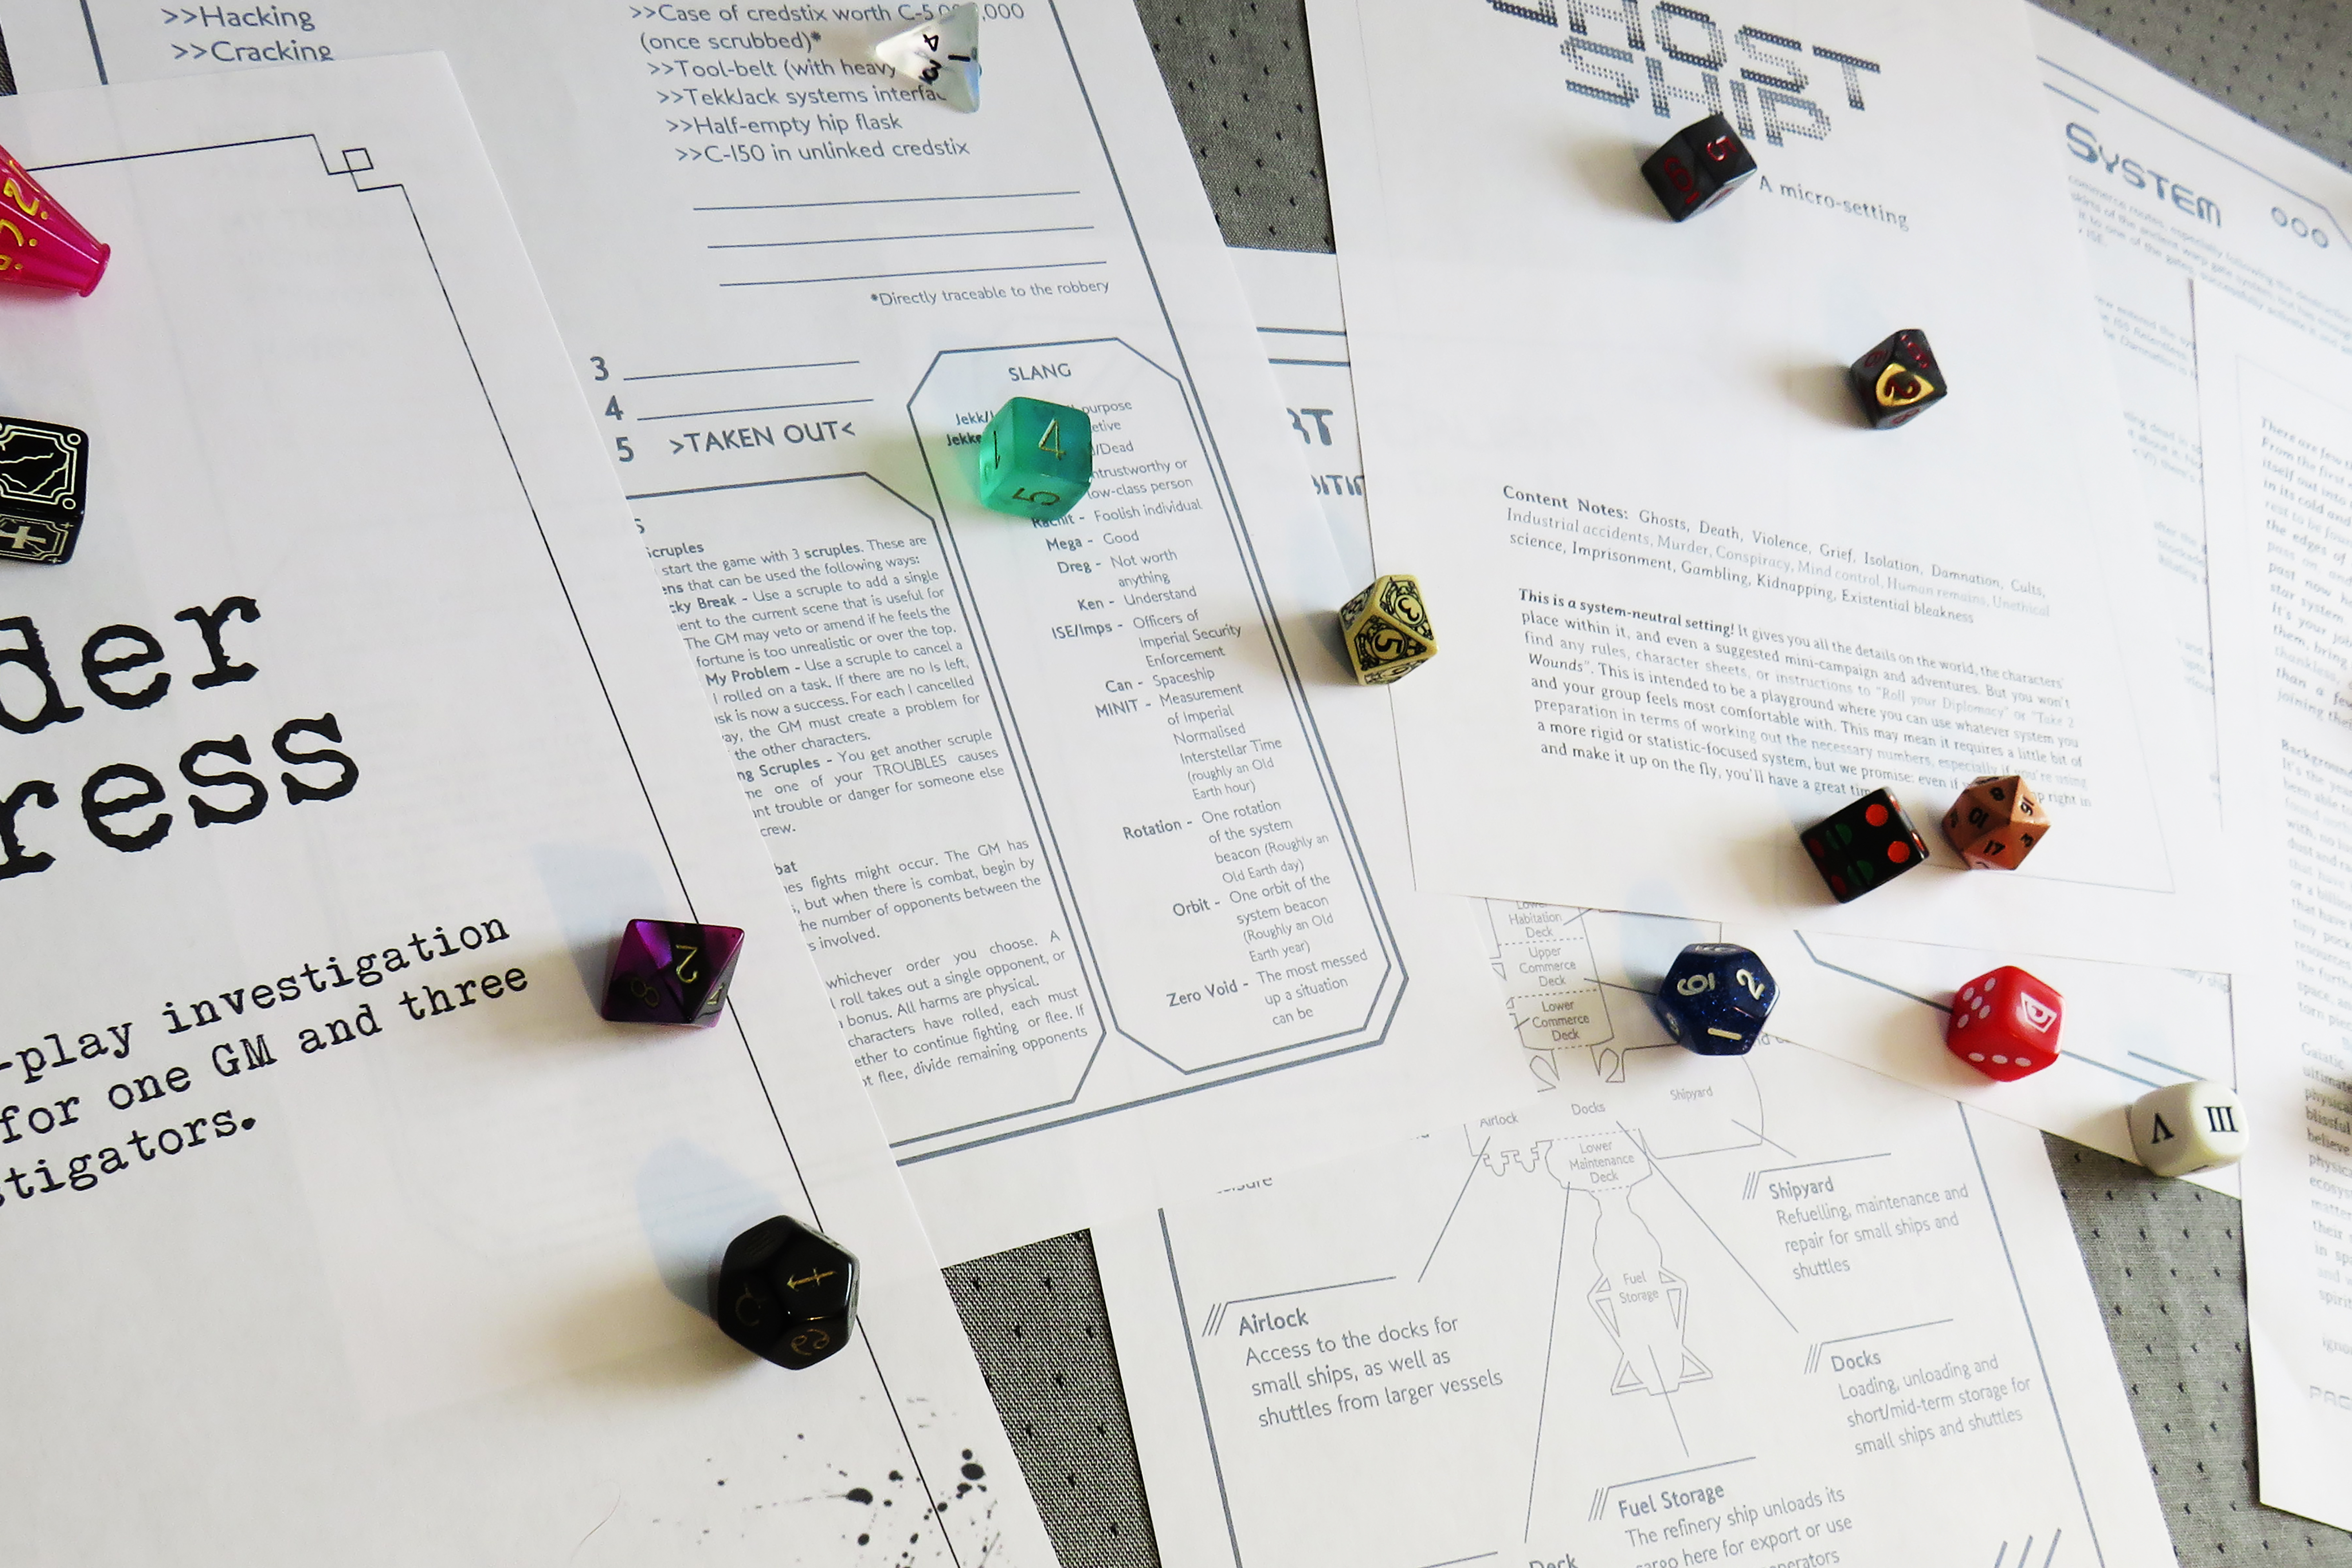 Multicoloured dice and printed game title sheets on a grey background.